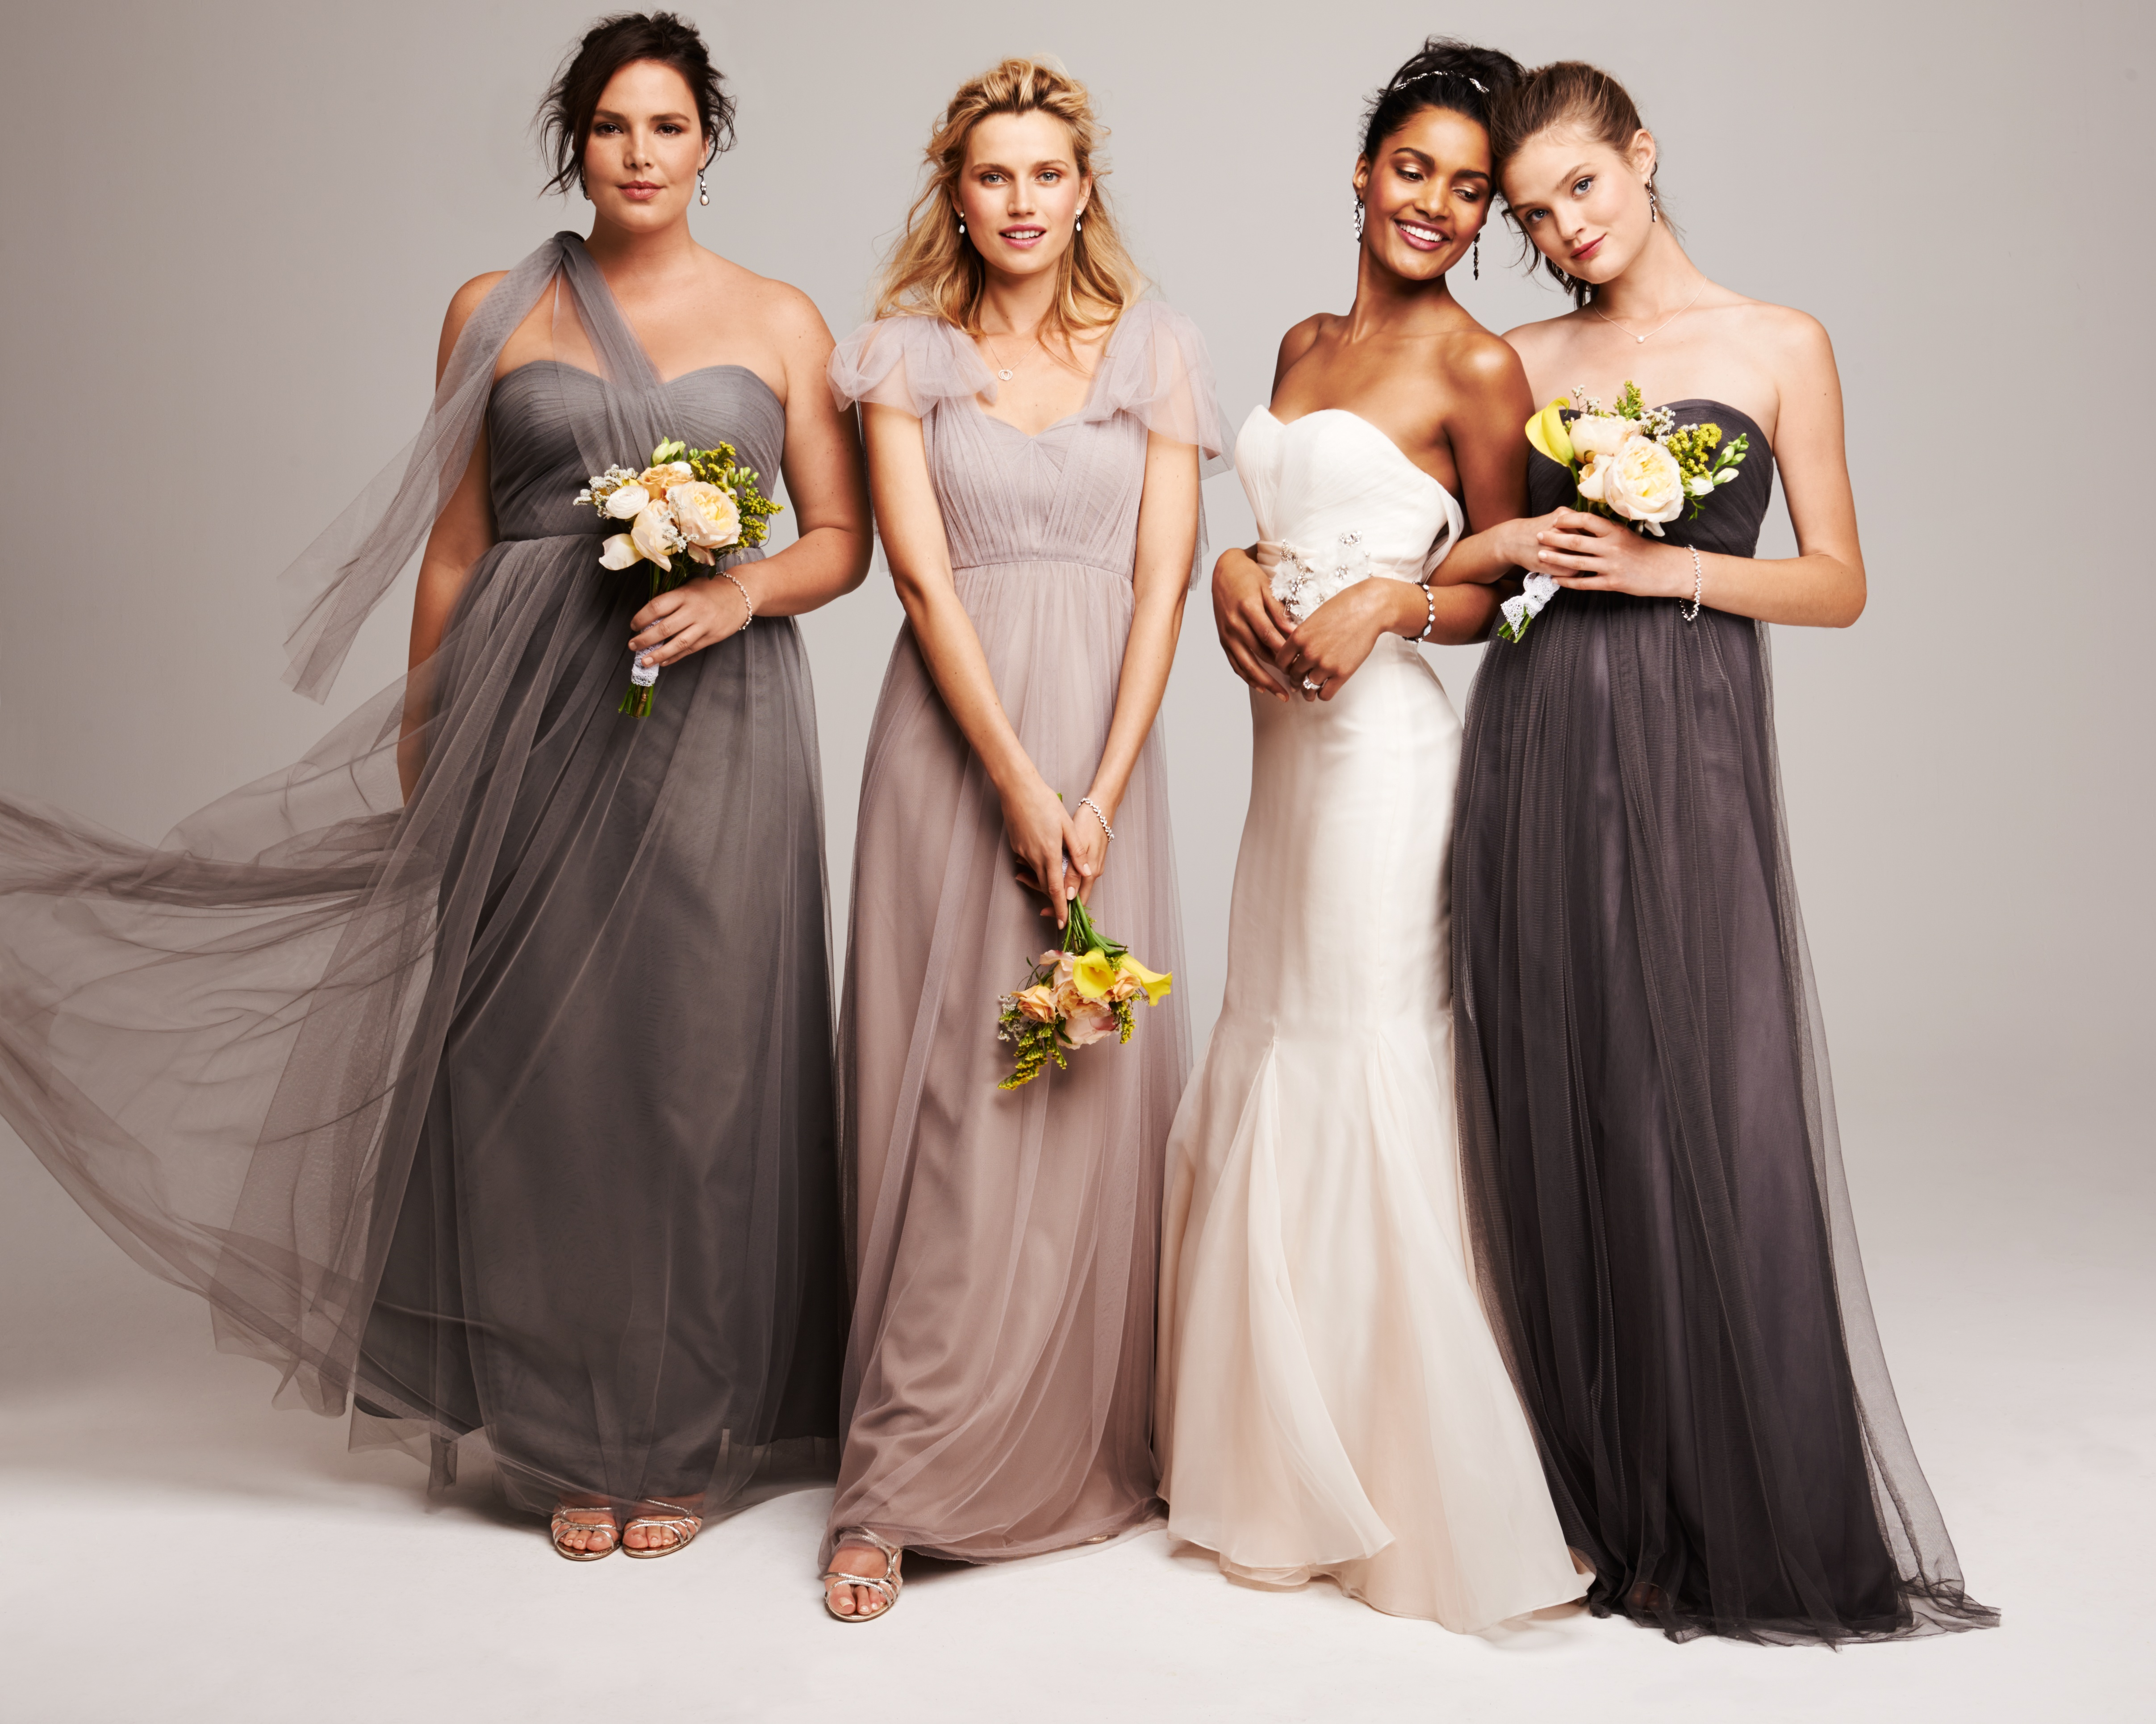 Styling Your Bridesmaids